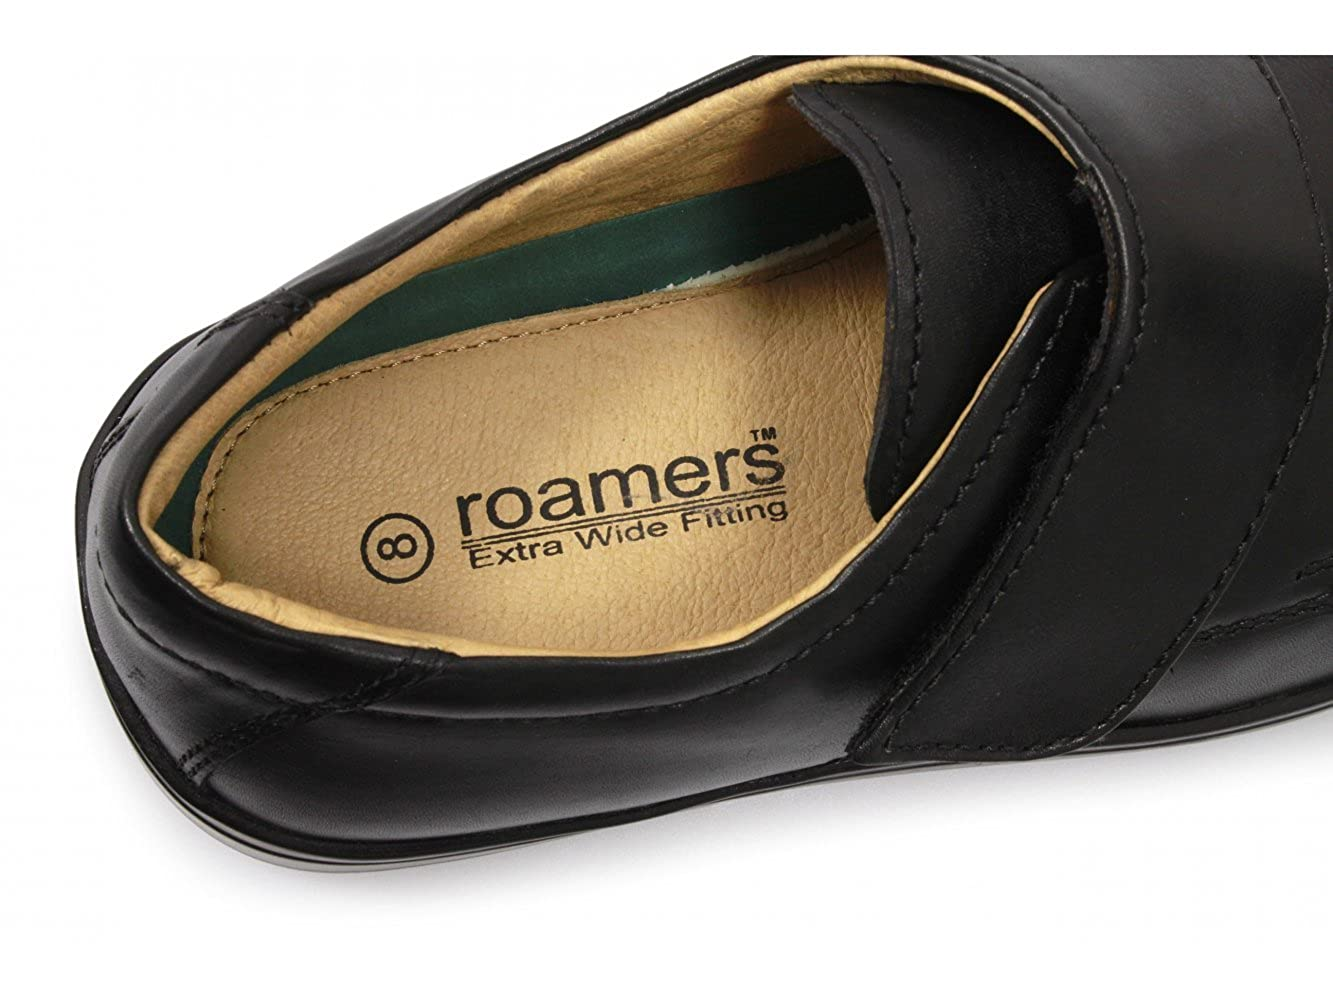 7205617e4f5 ROAMERS Extra Wide Touch Fastening Casual Shoes Mens  Amazon.co.uk  Shoes    Bags